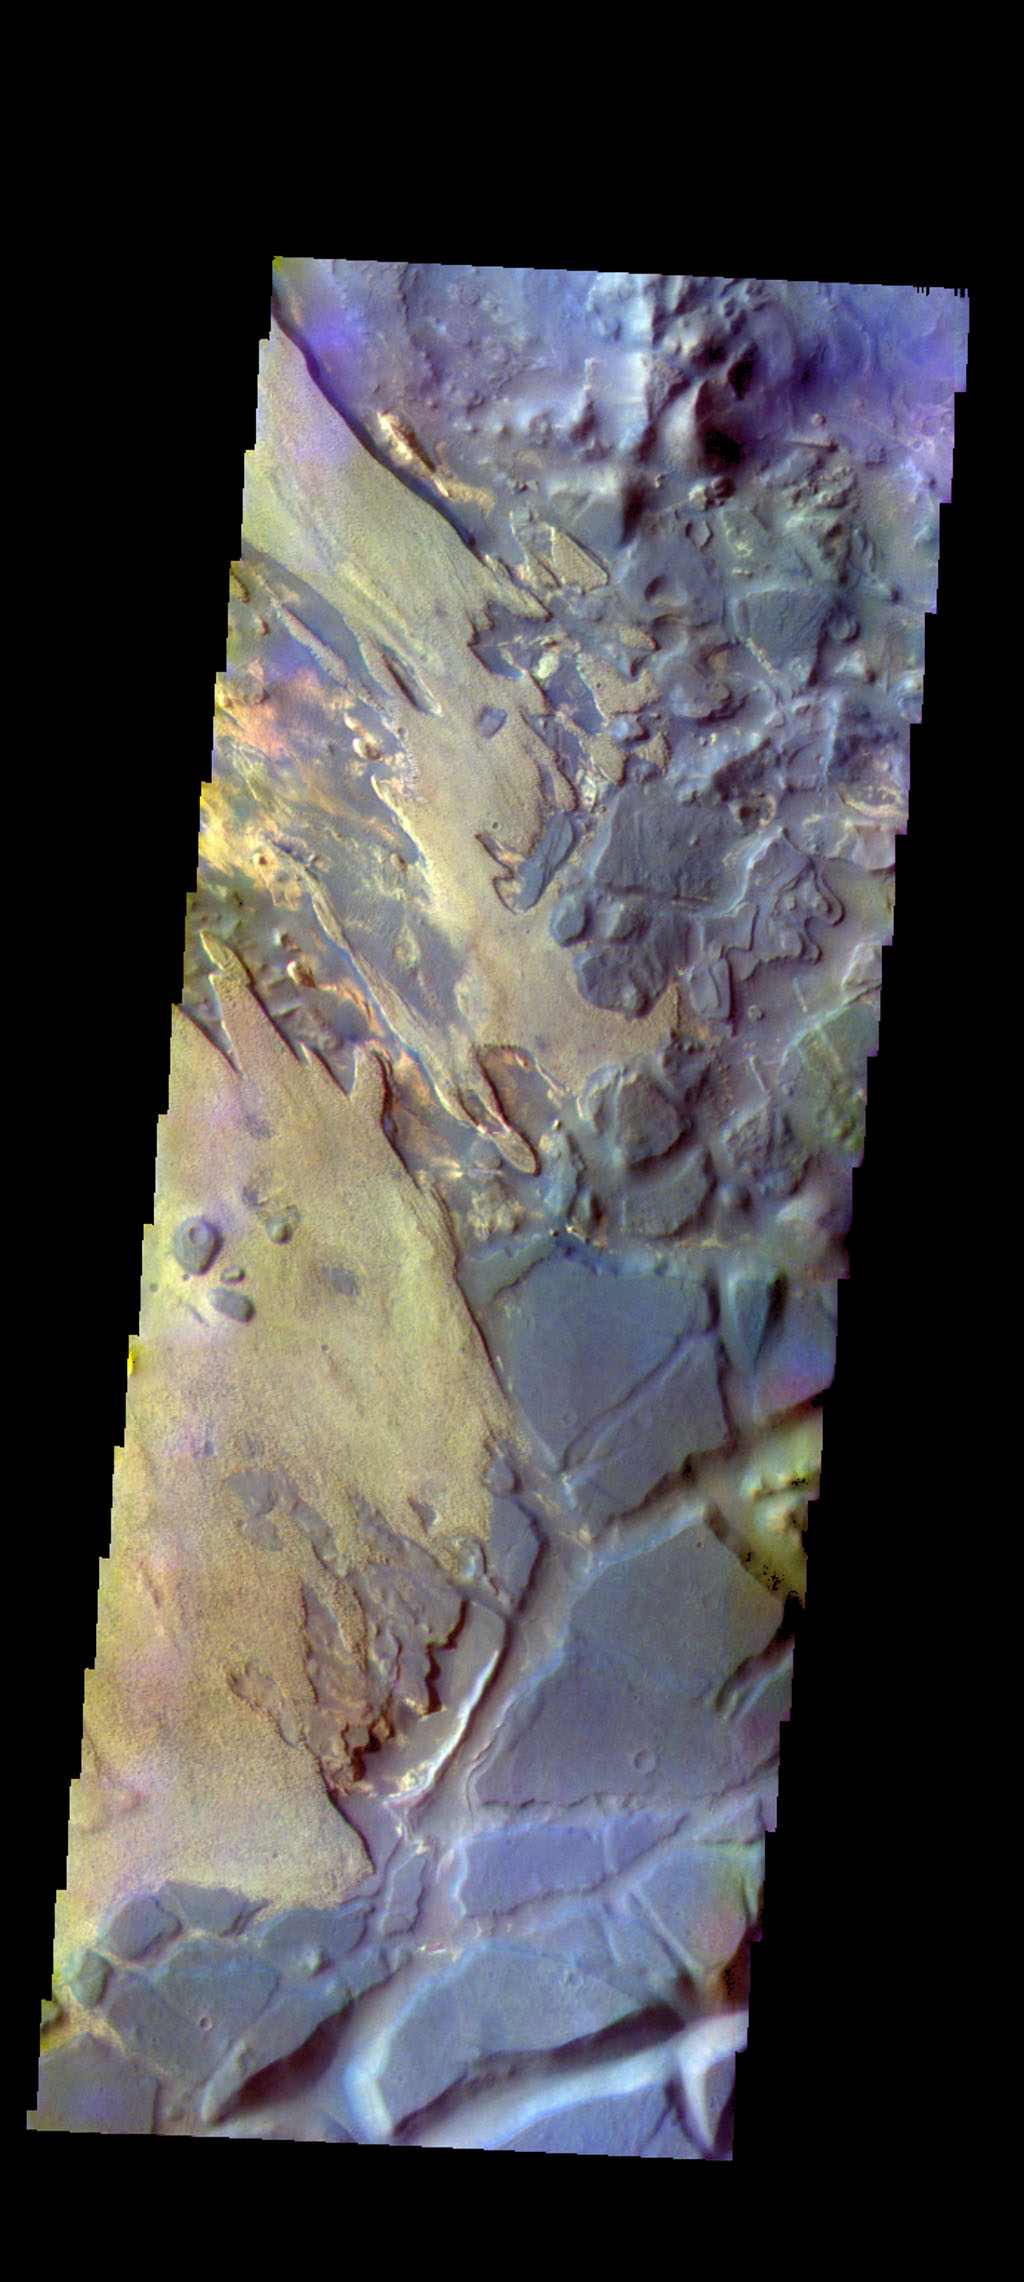 The THEMIS camera contains 5 filters. The data from different filters can be combined in multiple ways to create a false color image. This image from NASA's 2001 Mars Odyssey spacecraft shows part of Aram Chaos.